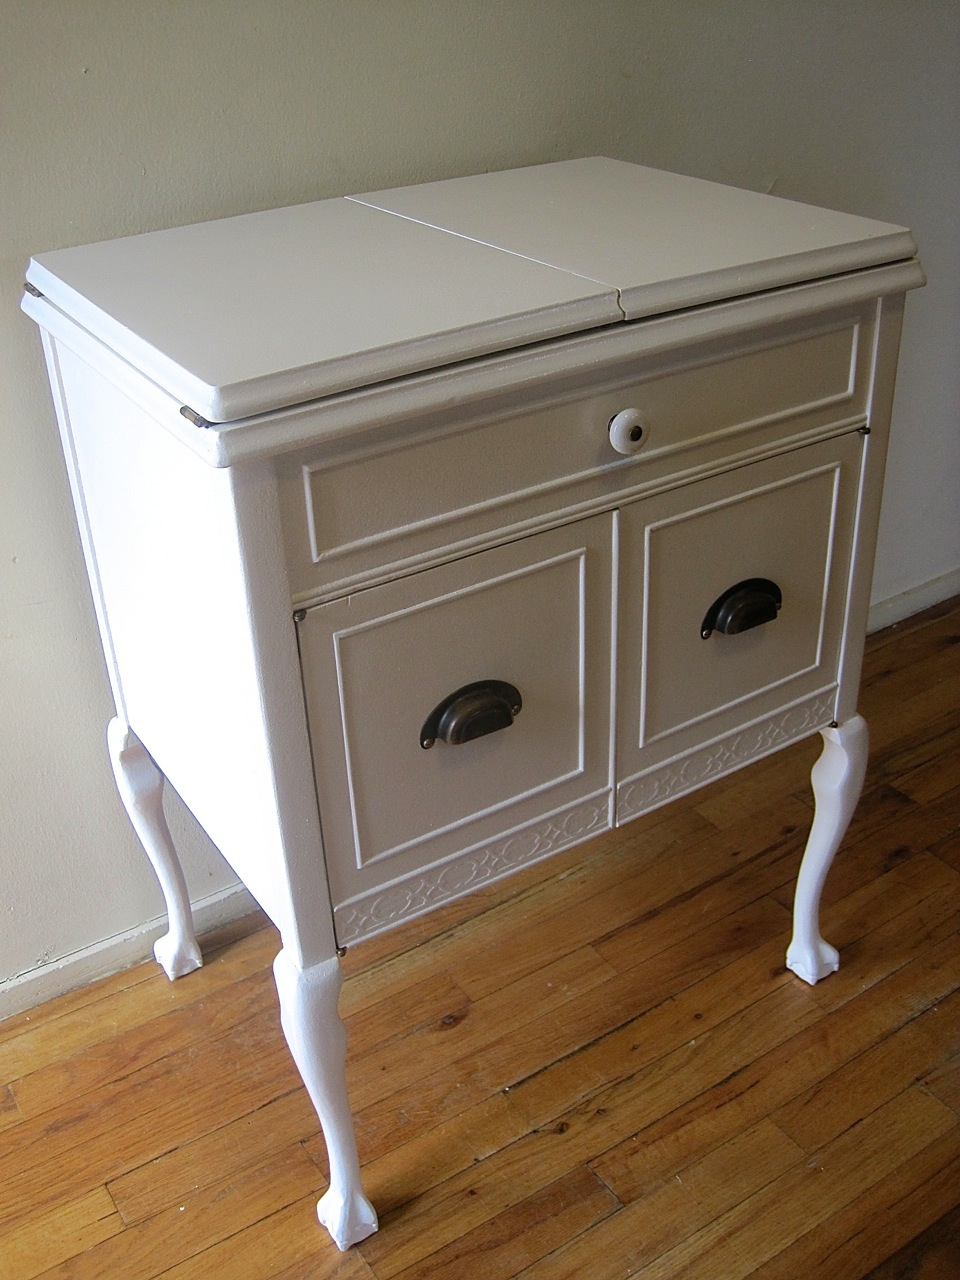 The Project Lady: Sewing Machine Cabinet Makeover